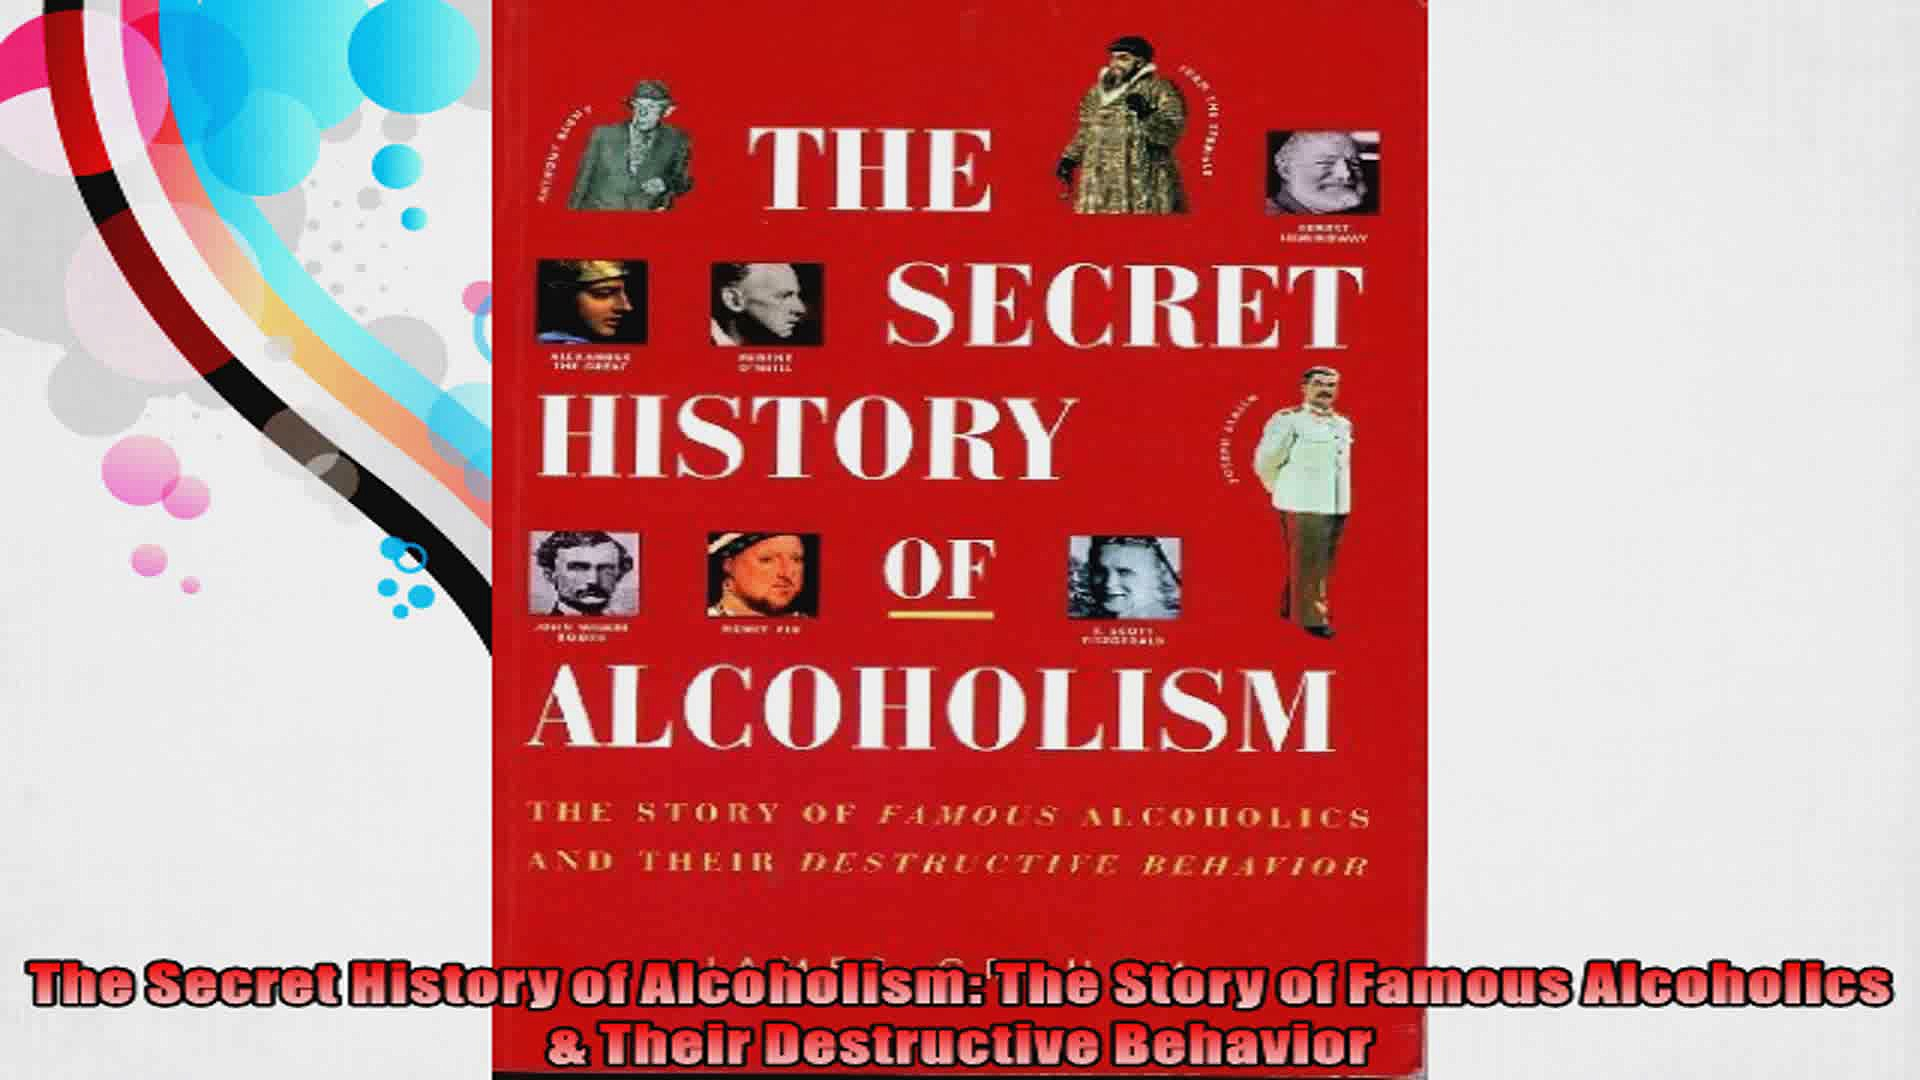 The Secret History of Alcoholism The Story of Famous Alcoholics  Their Destructive